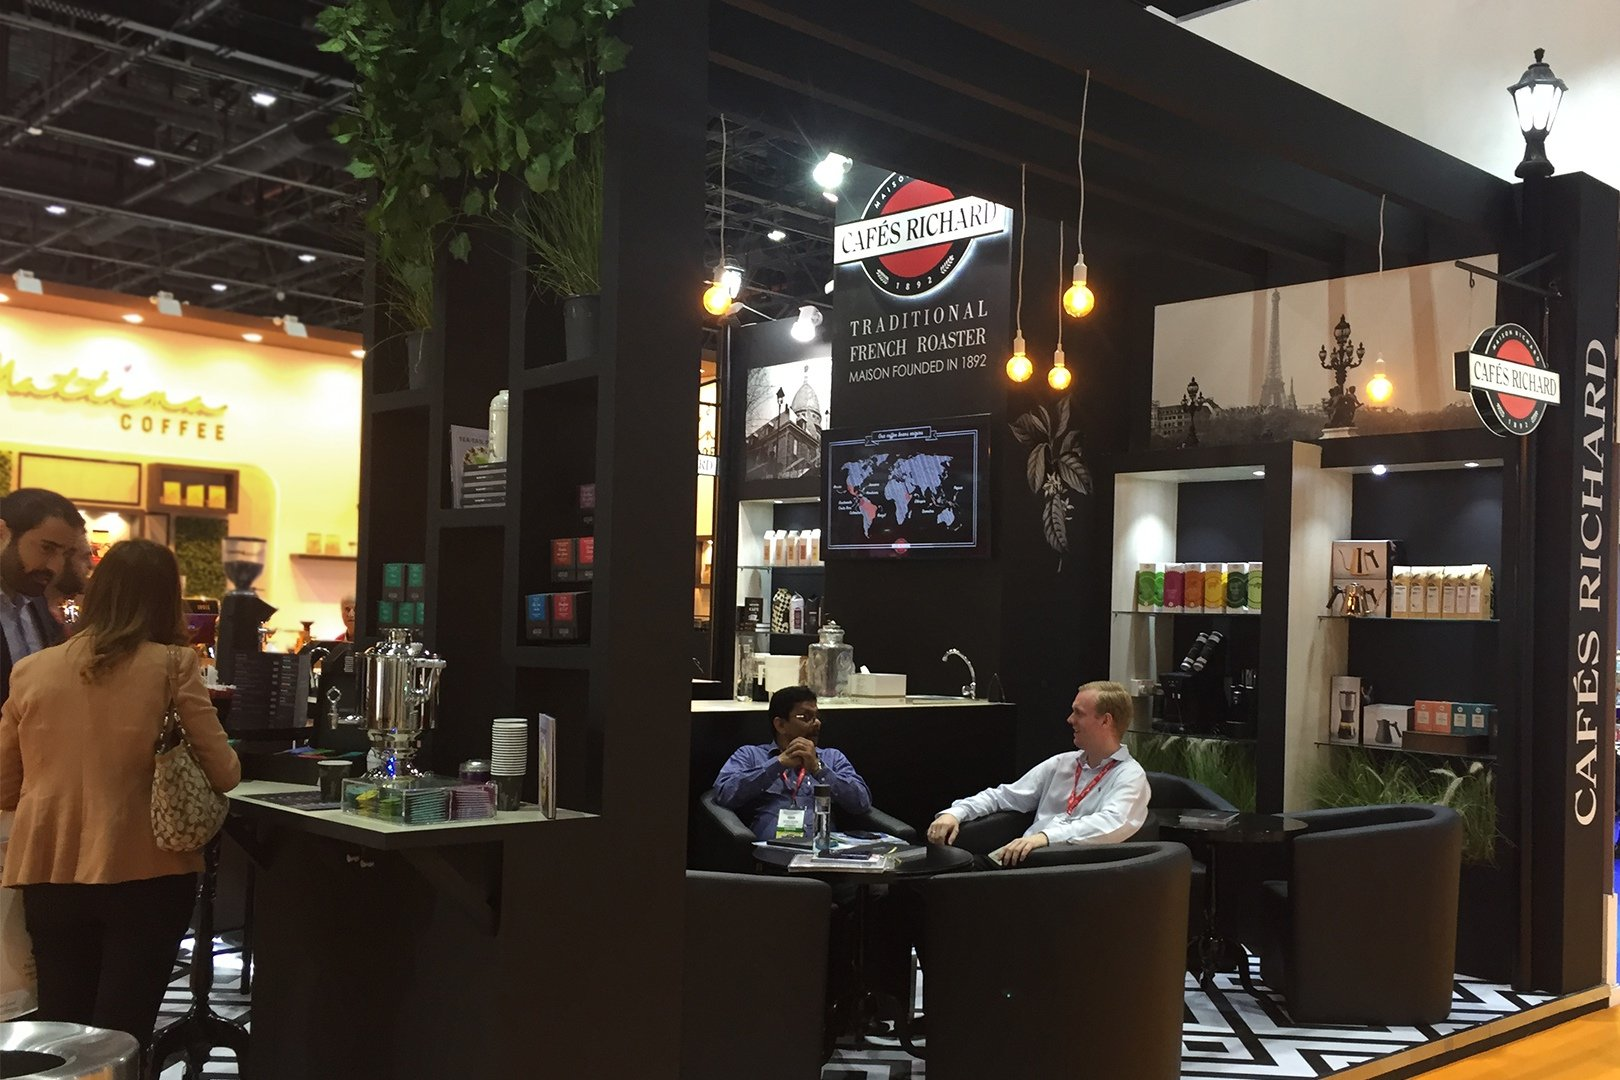 booth of Cafes Richard at the exhibition in the UAE